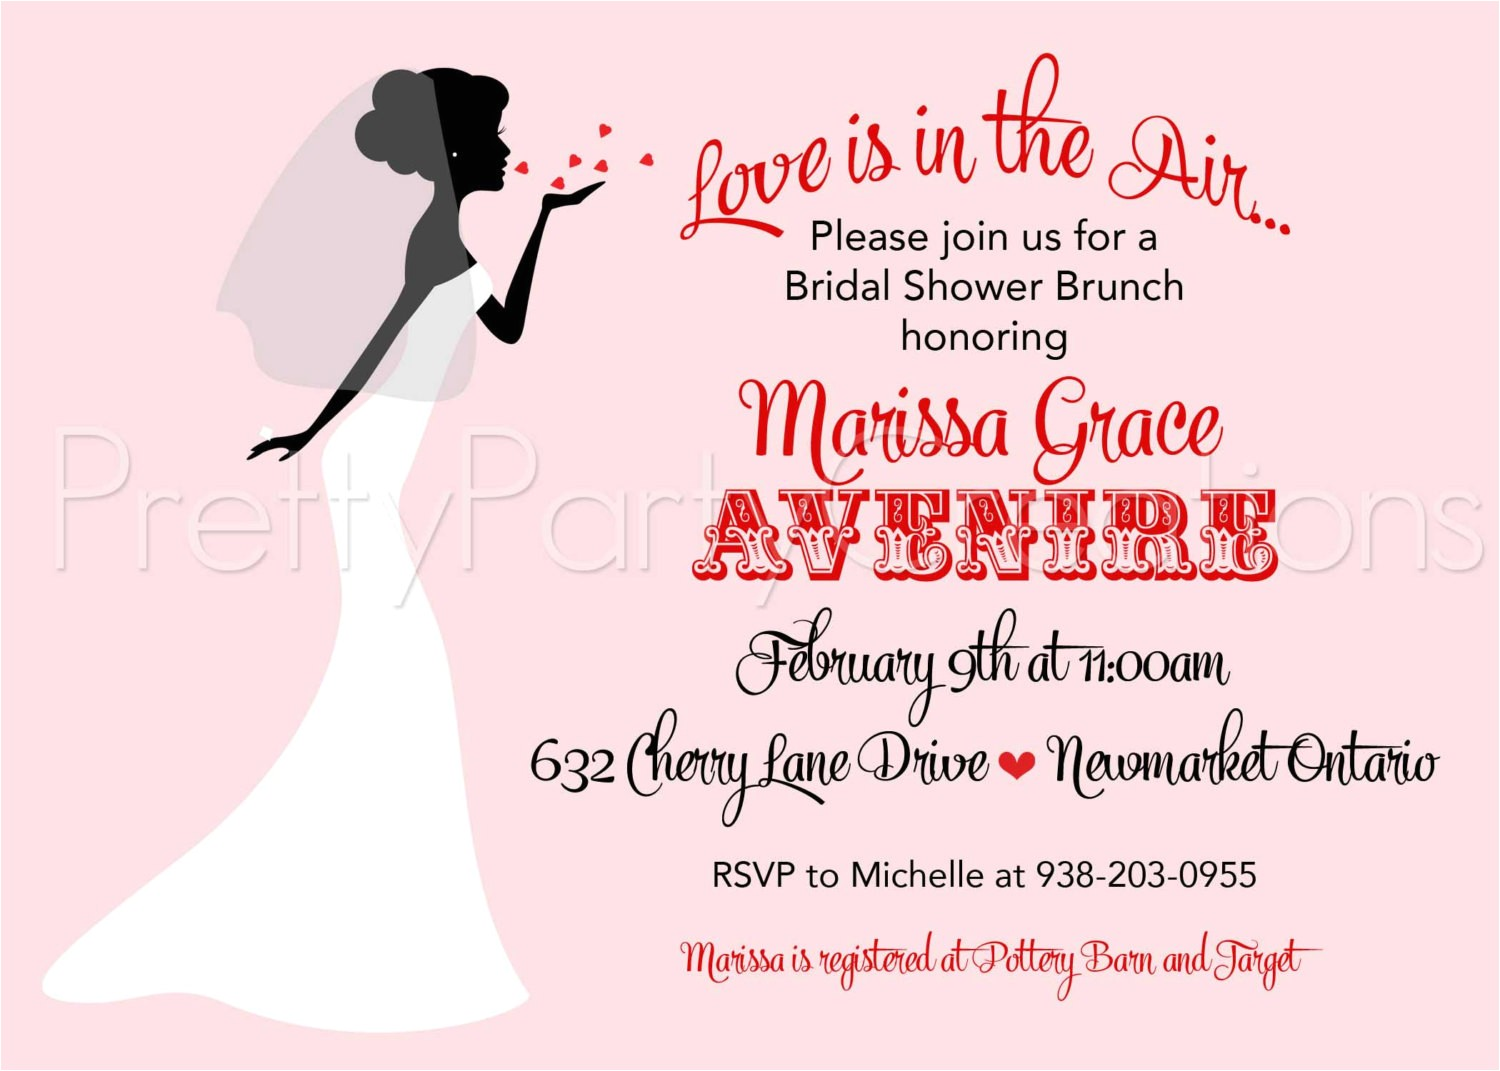 valentine bride bridal shower invitation utm source pinterest utm medium pagetools utm campaign share